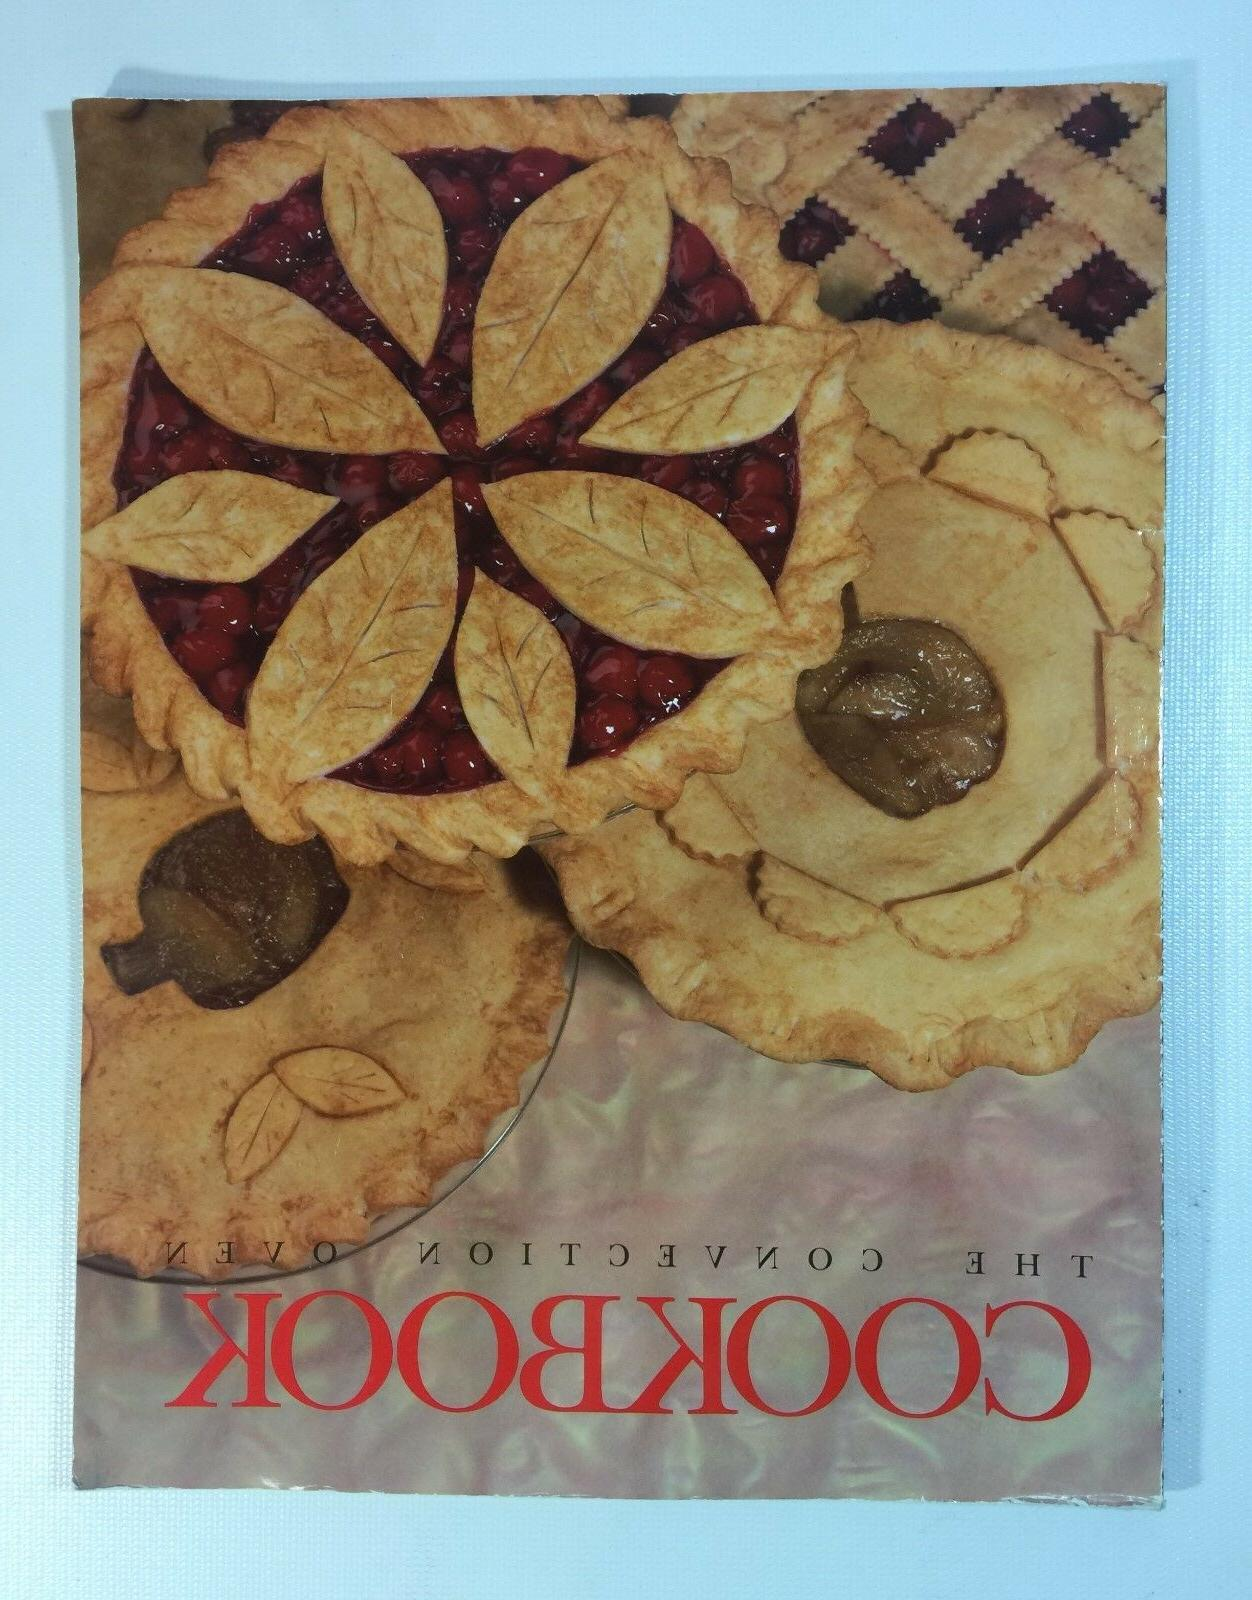 the convection oven cookbook 1992